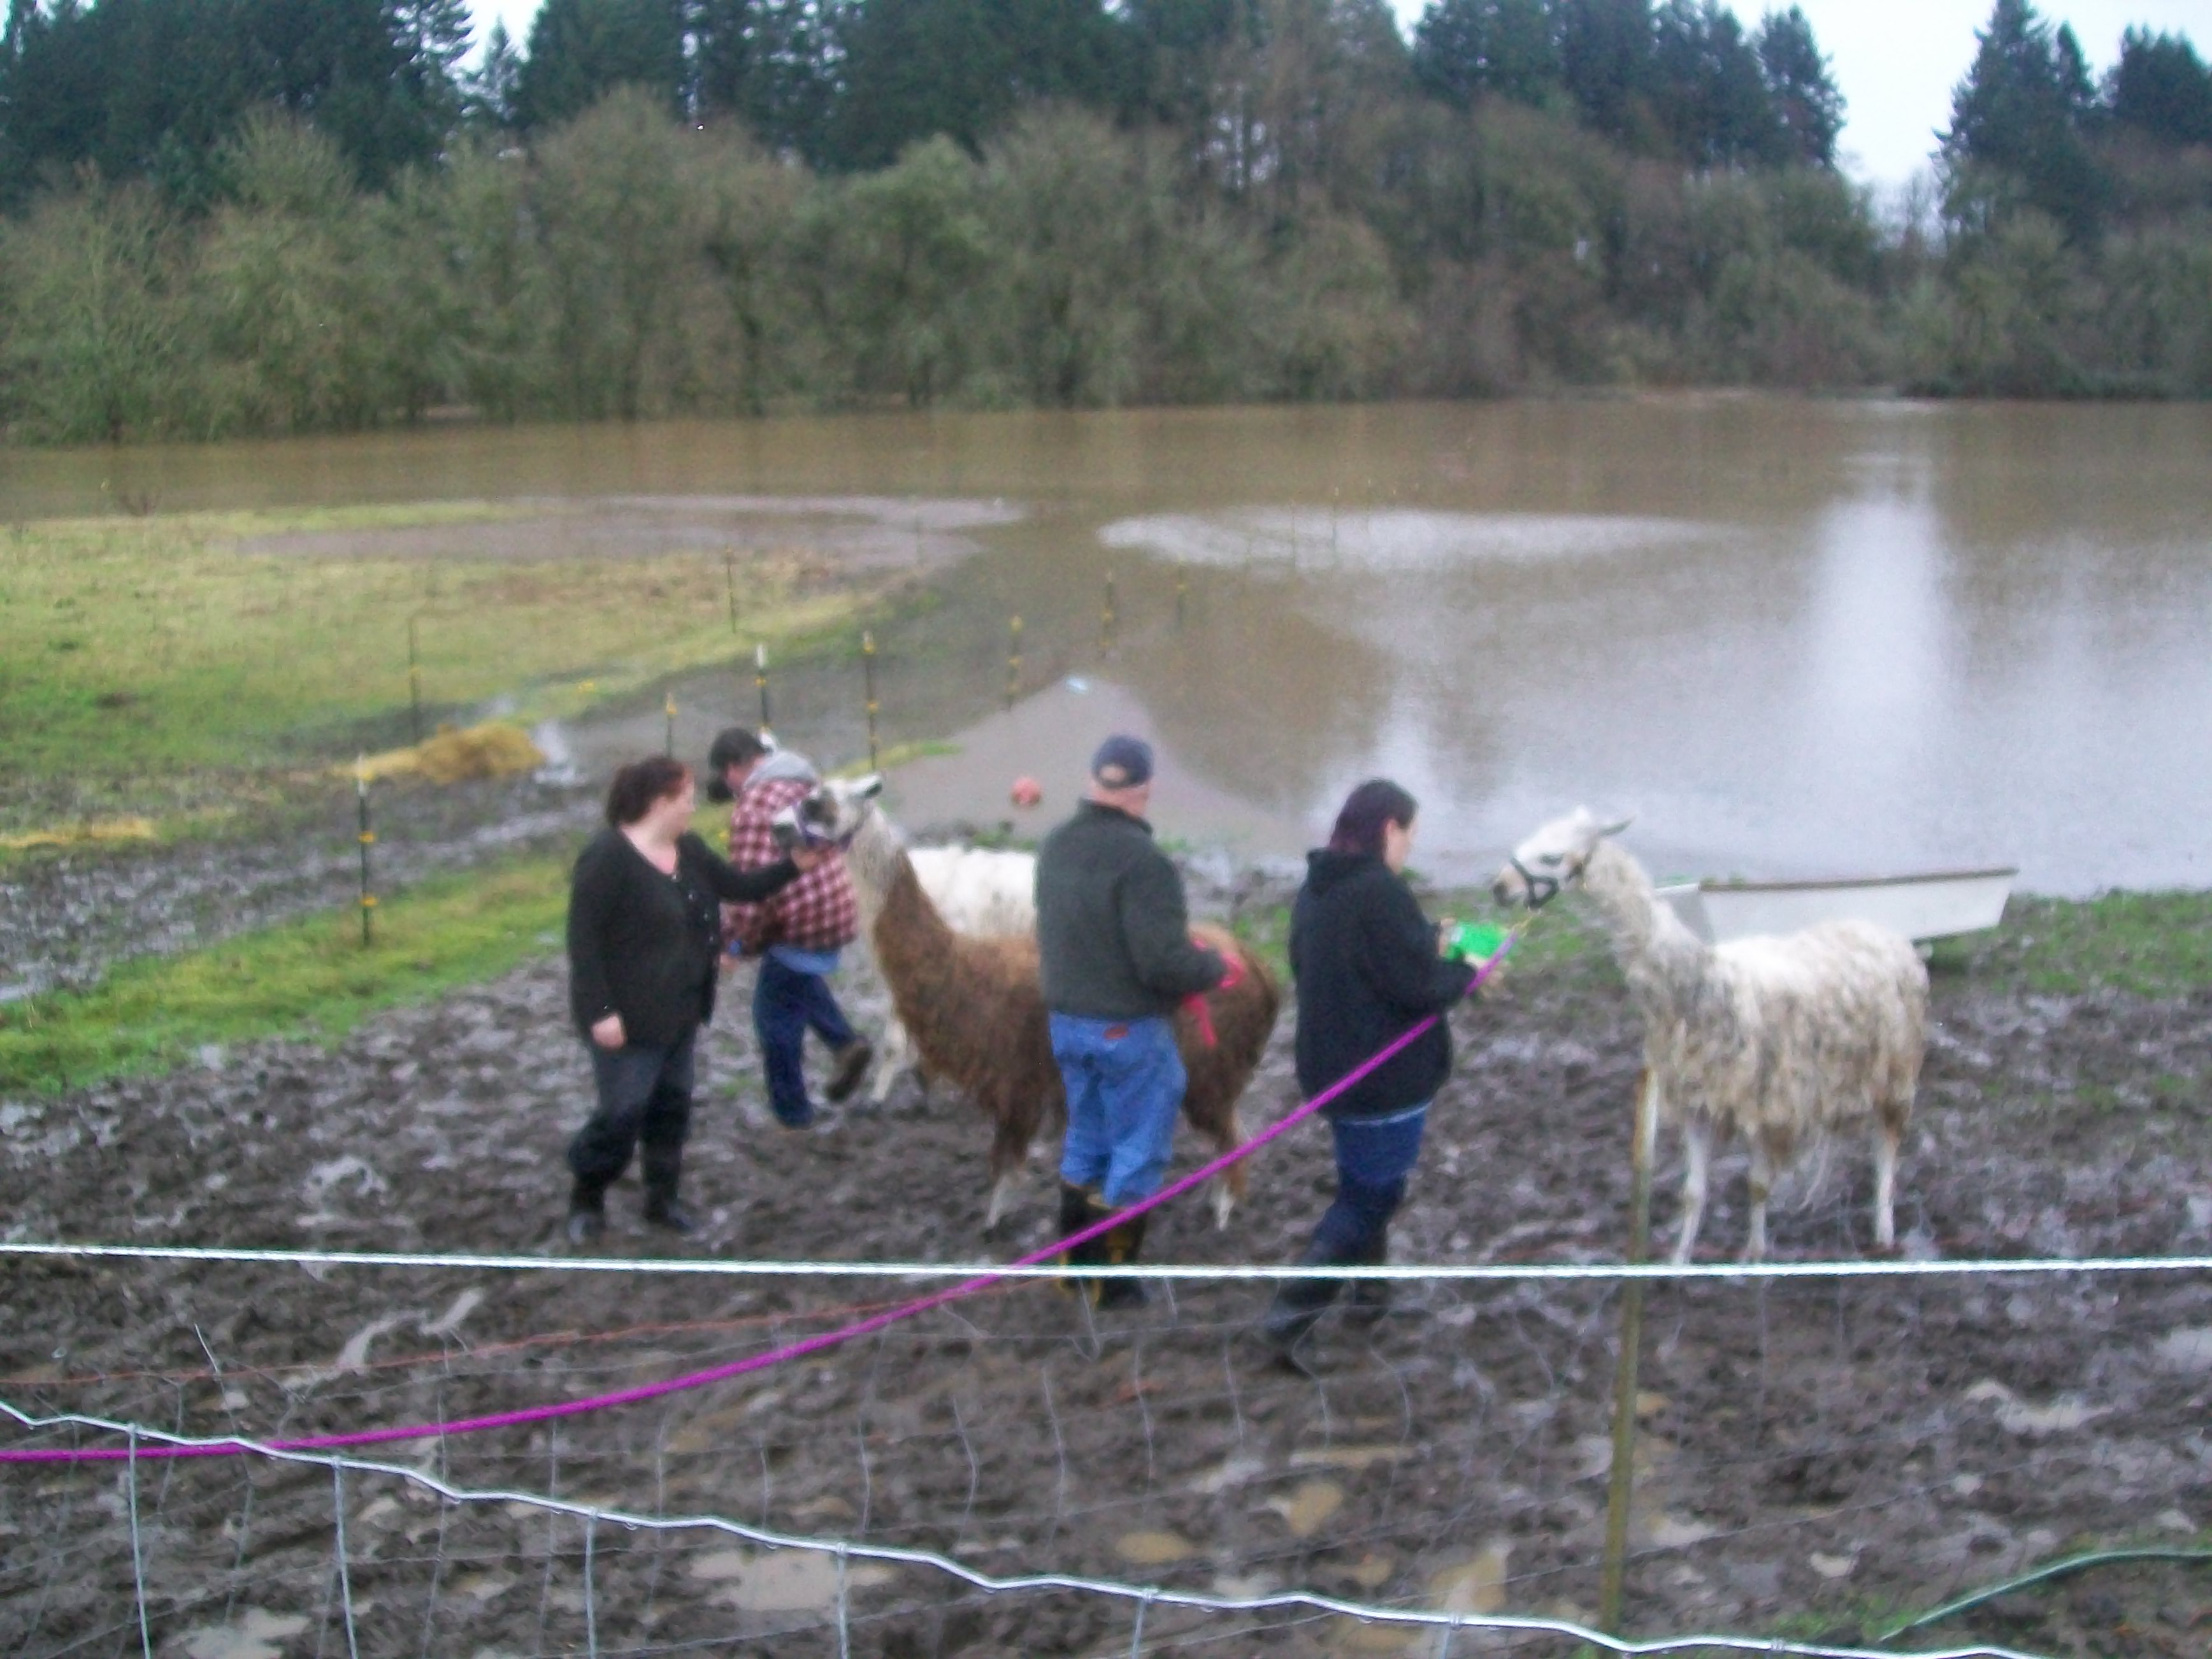 Daring Llama Rescue In Willamette Valley Flooding